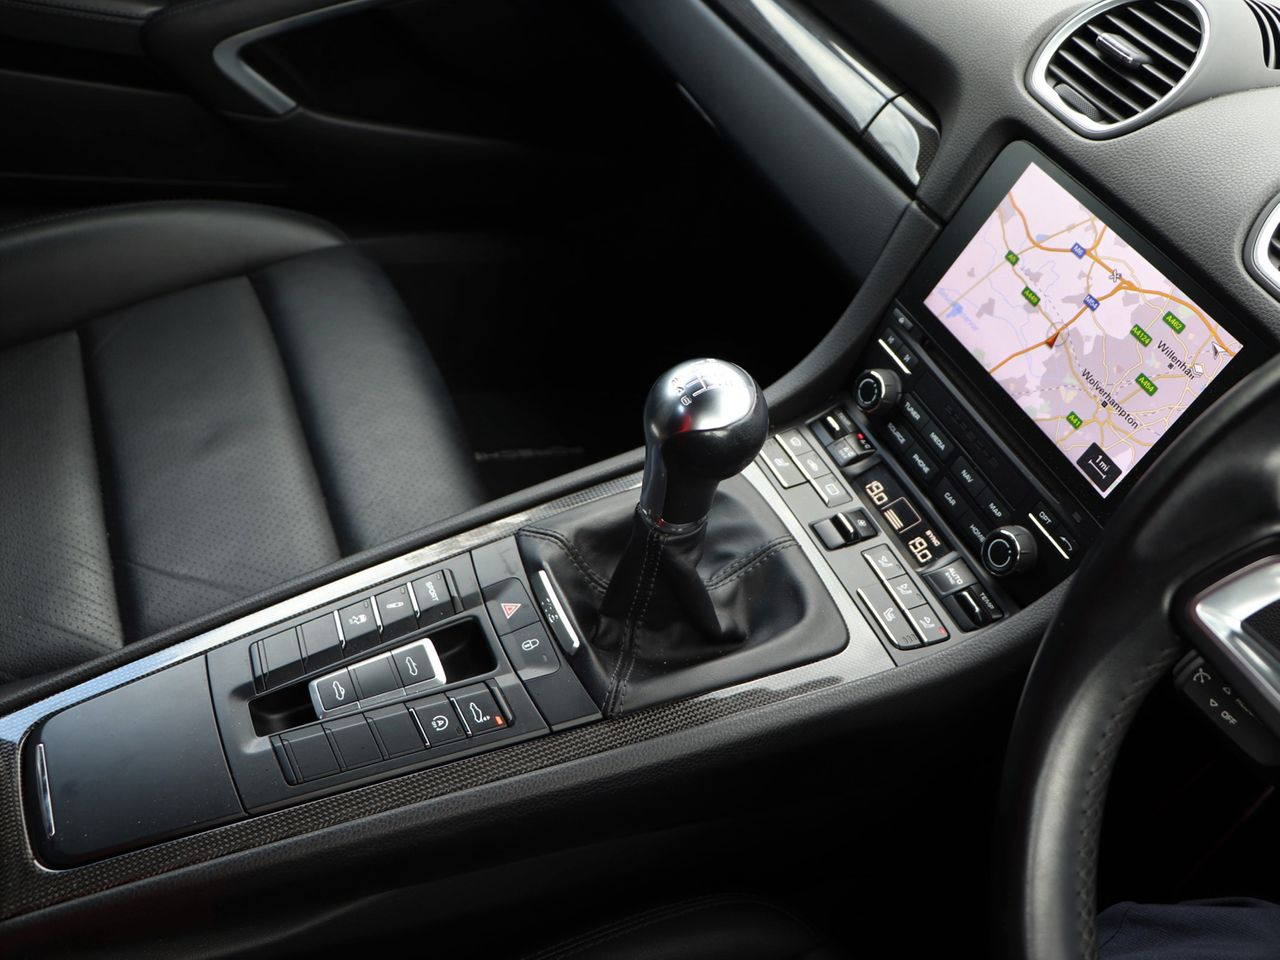 718 (982) BOXSTER image 12